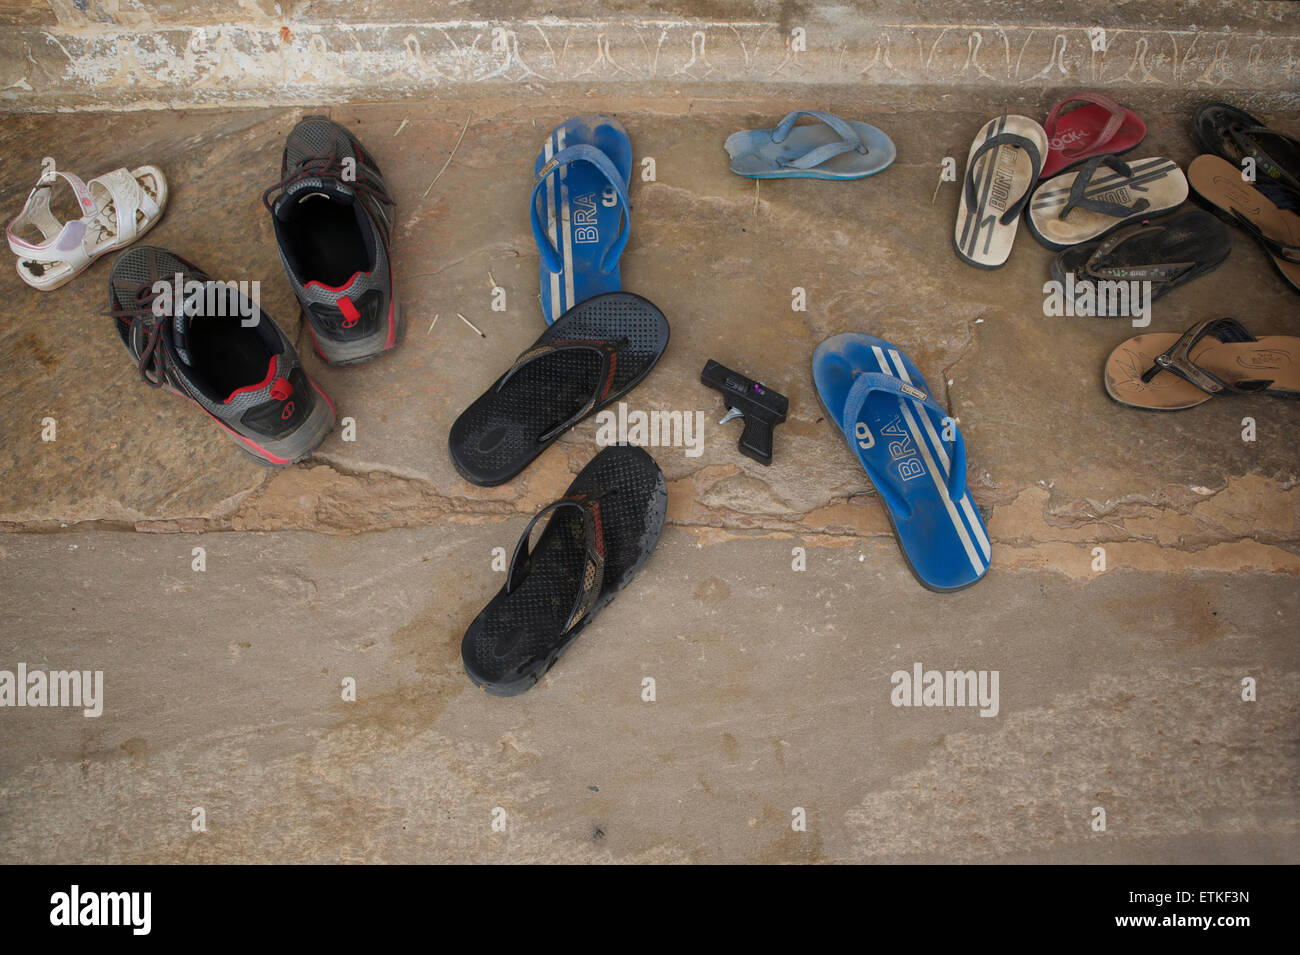 Footwear (and toy gun) left outside a temple. Mandawa, Shekawati region, Rajasthan India - Stock Image